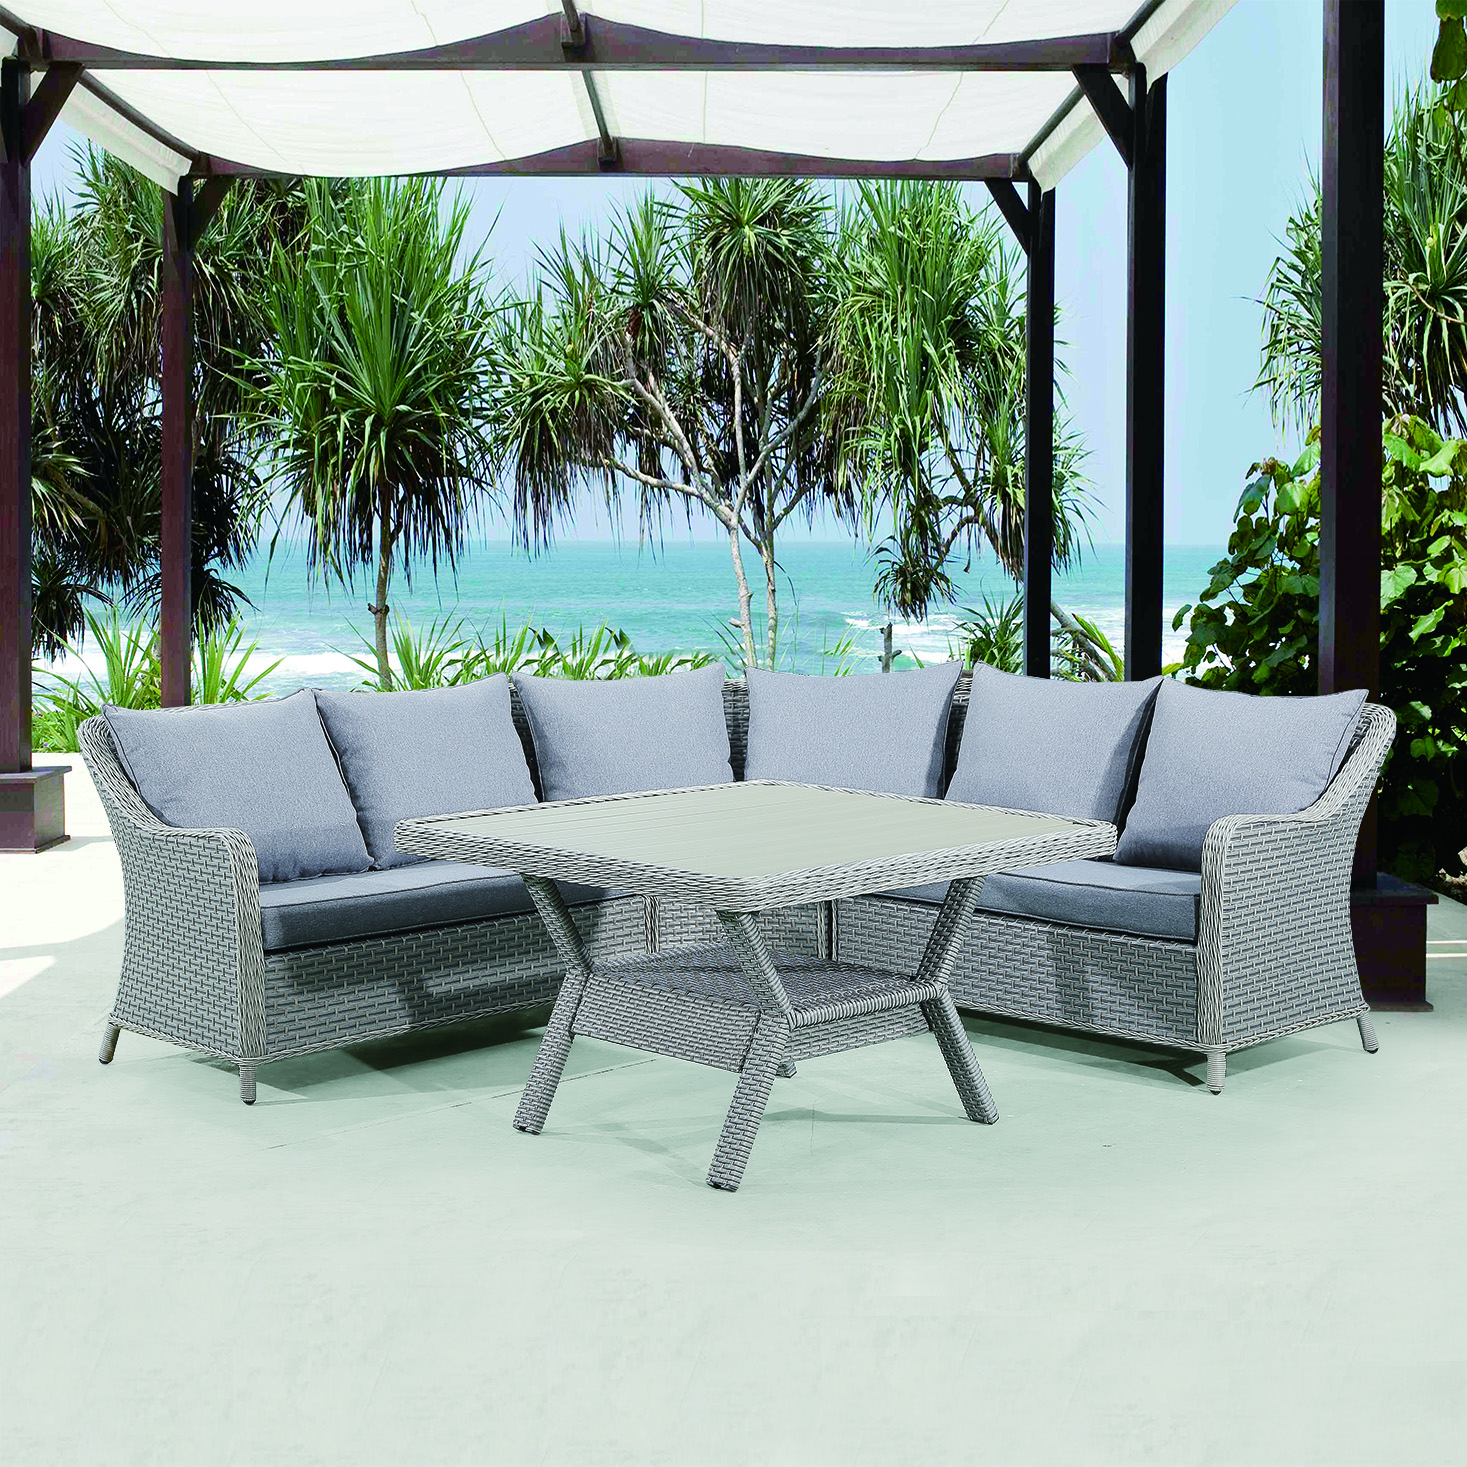 Rattan 3 Piece Sofa Rattan Garden Furniture Outdoor 3 Seater Sofa Buy Outdoor Garden Sofa Garden Sofa Outdoor Sofa Product On Alibaba